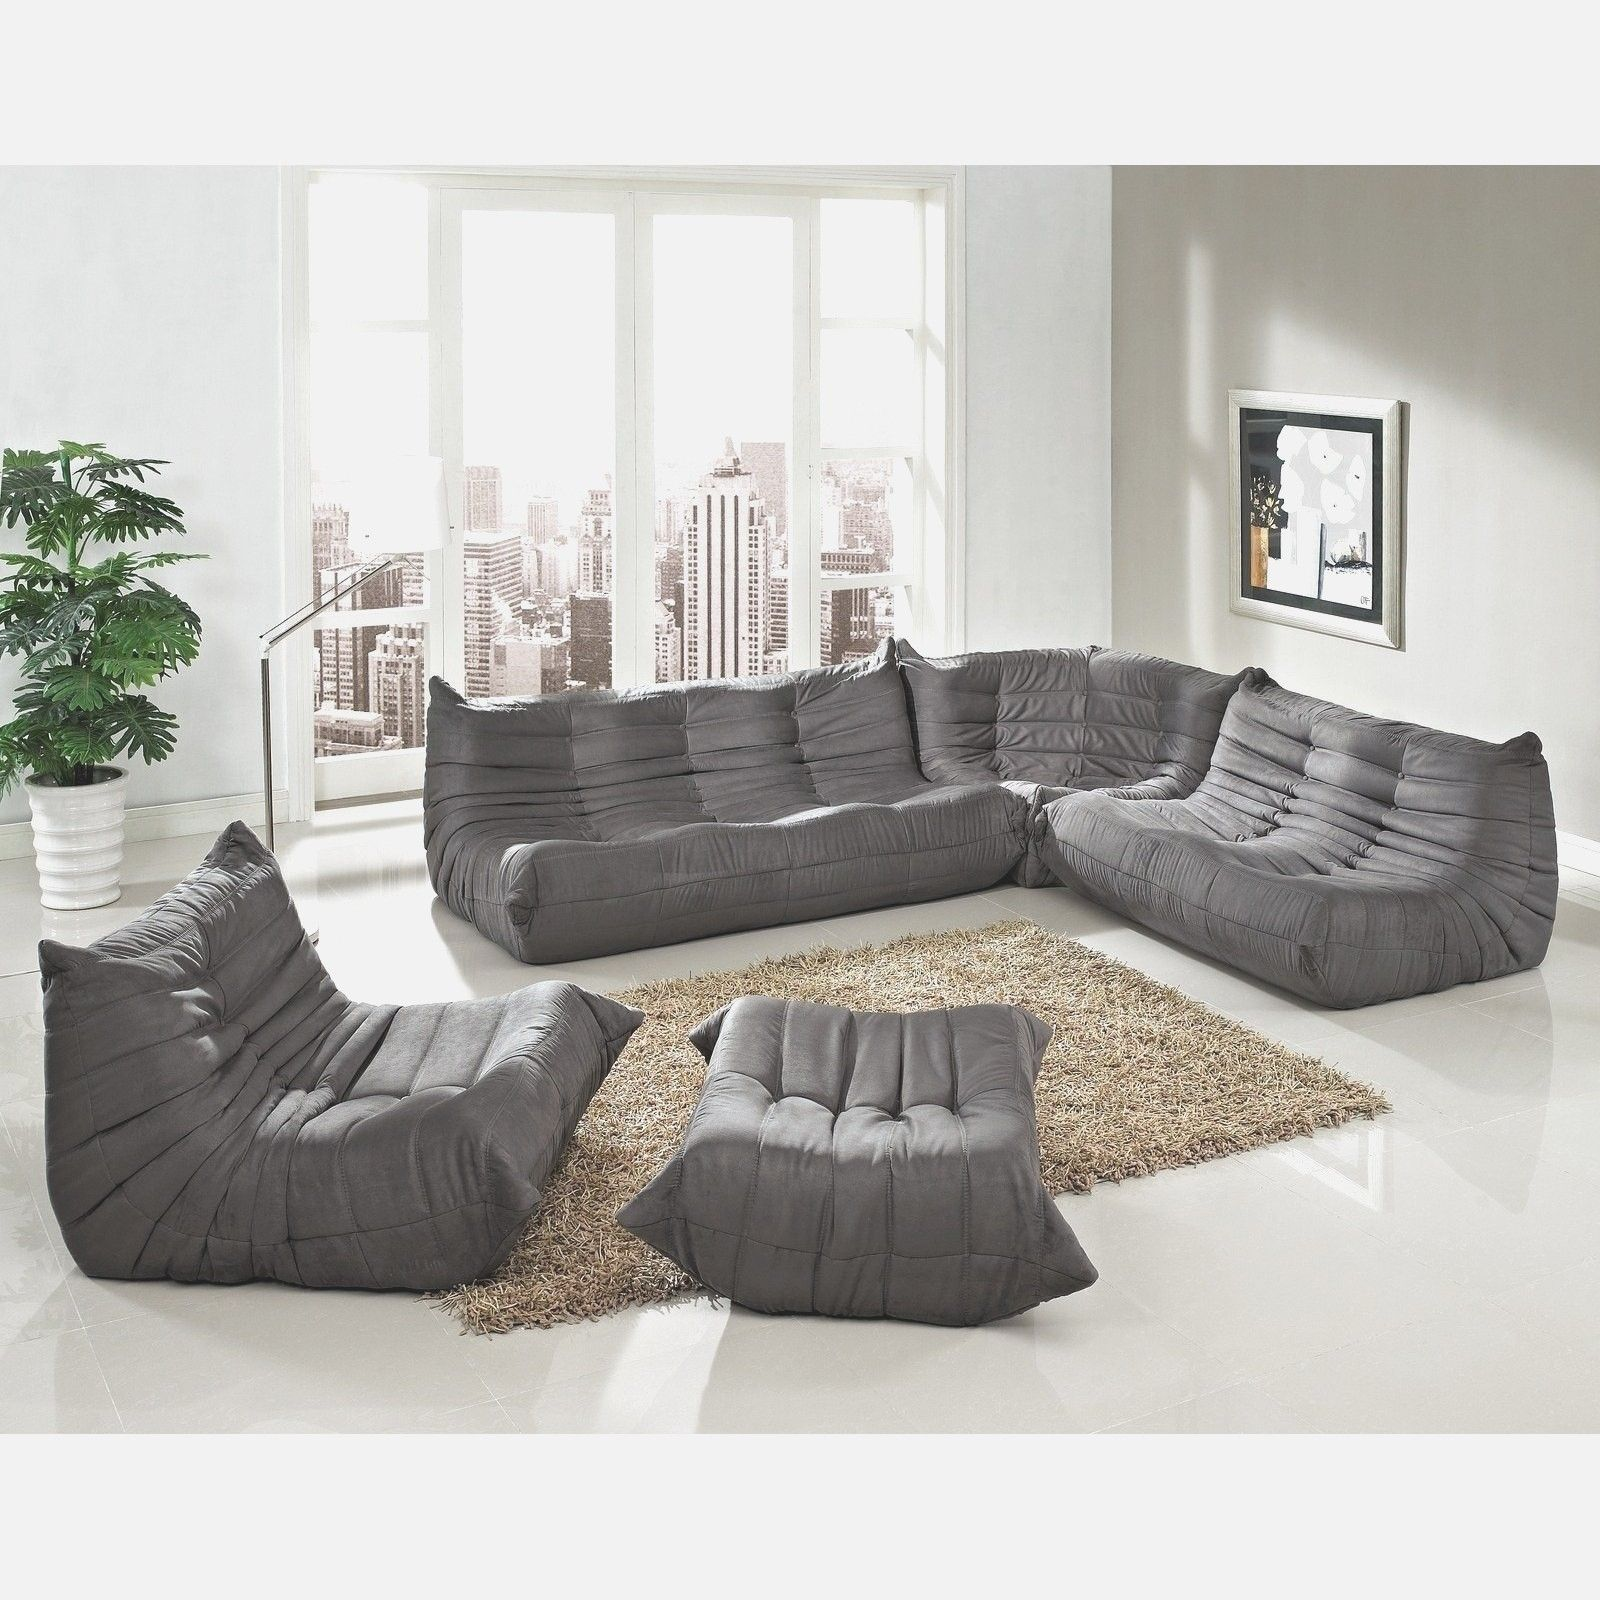 Light Gray Sectional Sofa Bennetti Modern Ferrara Fabric Leather